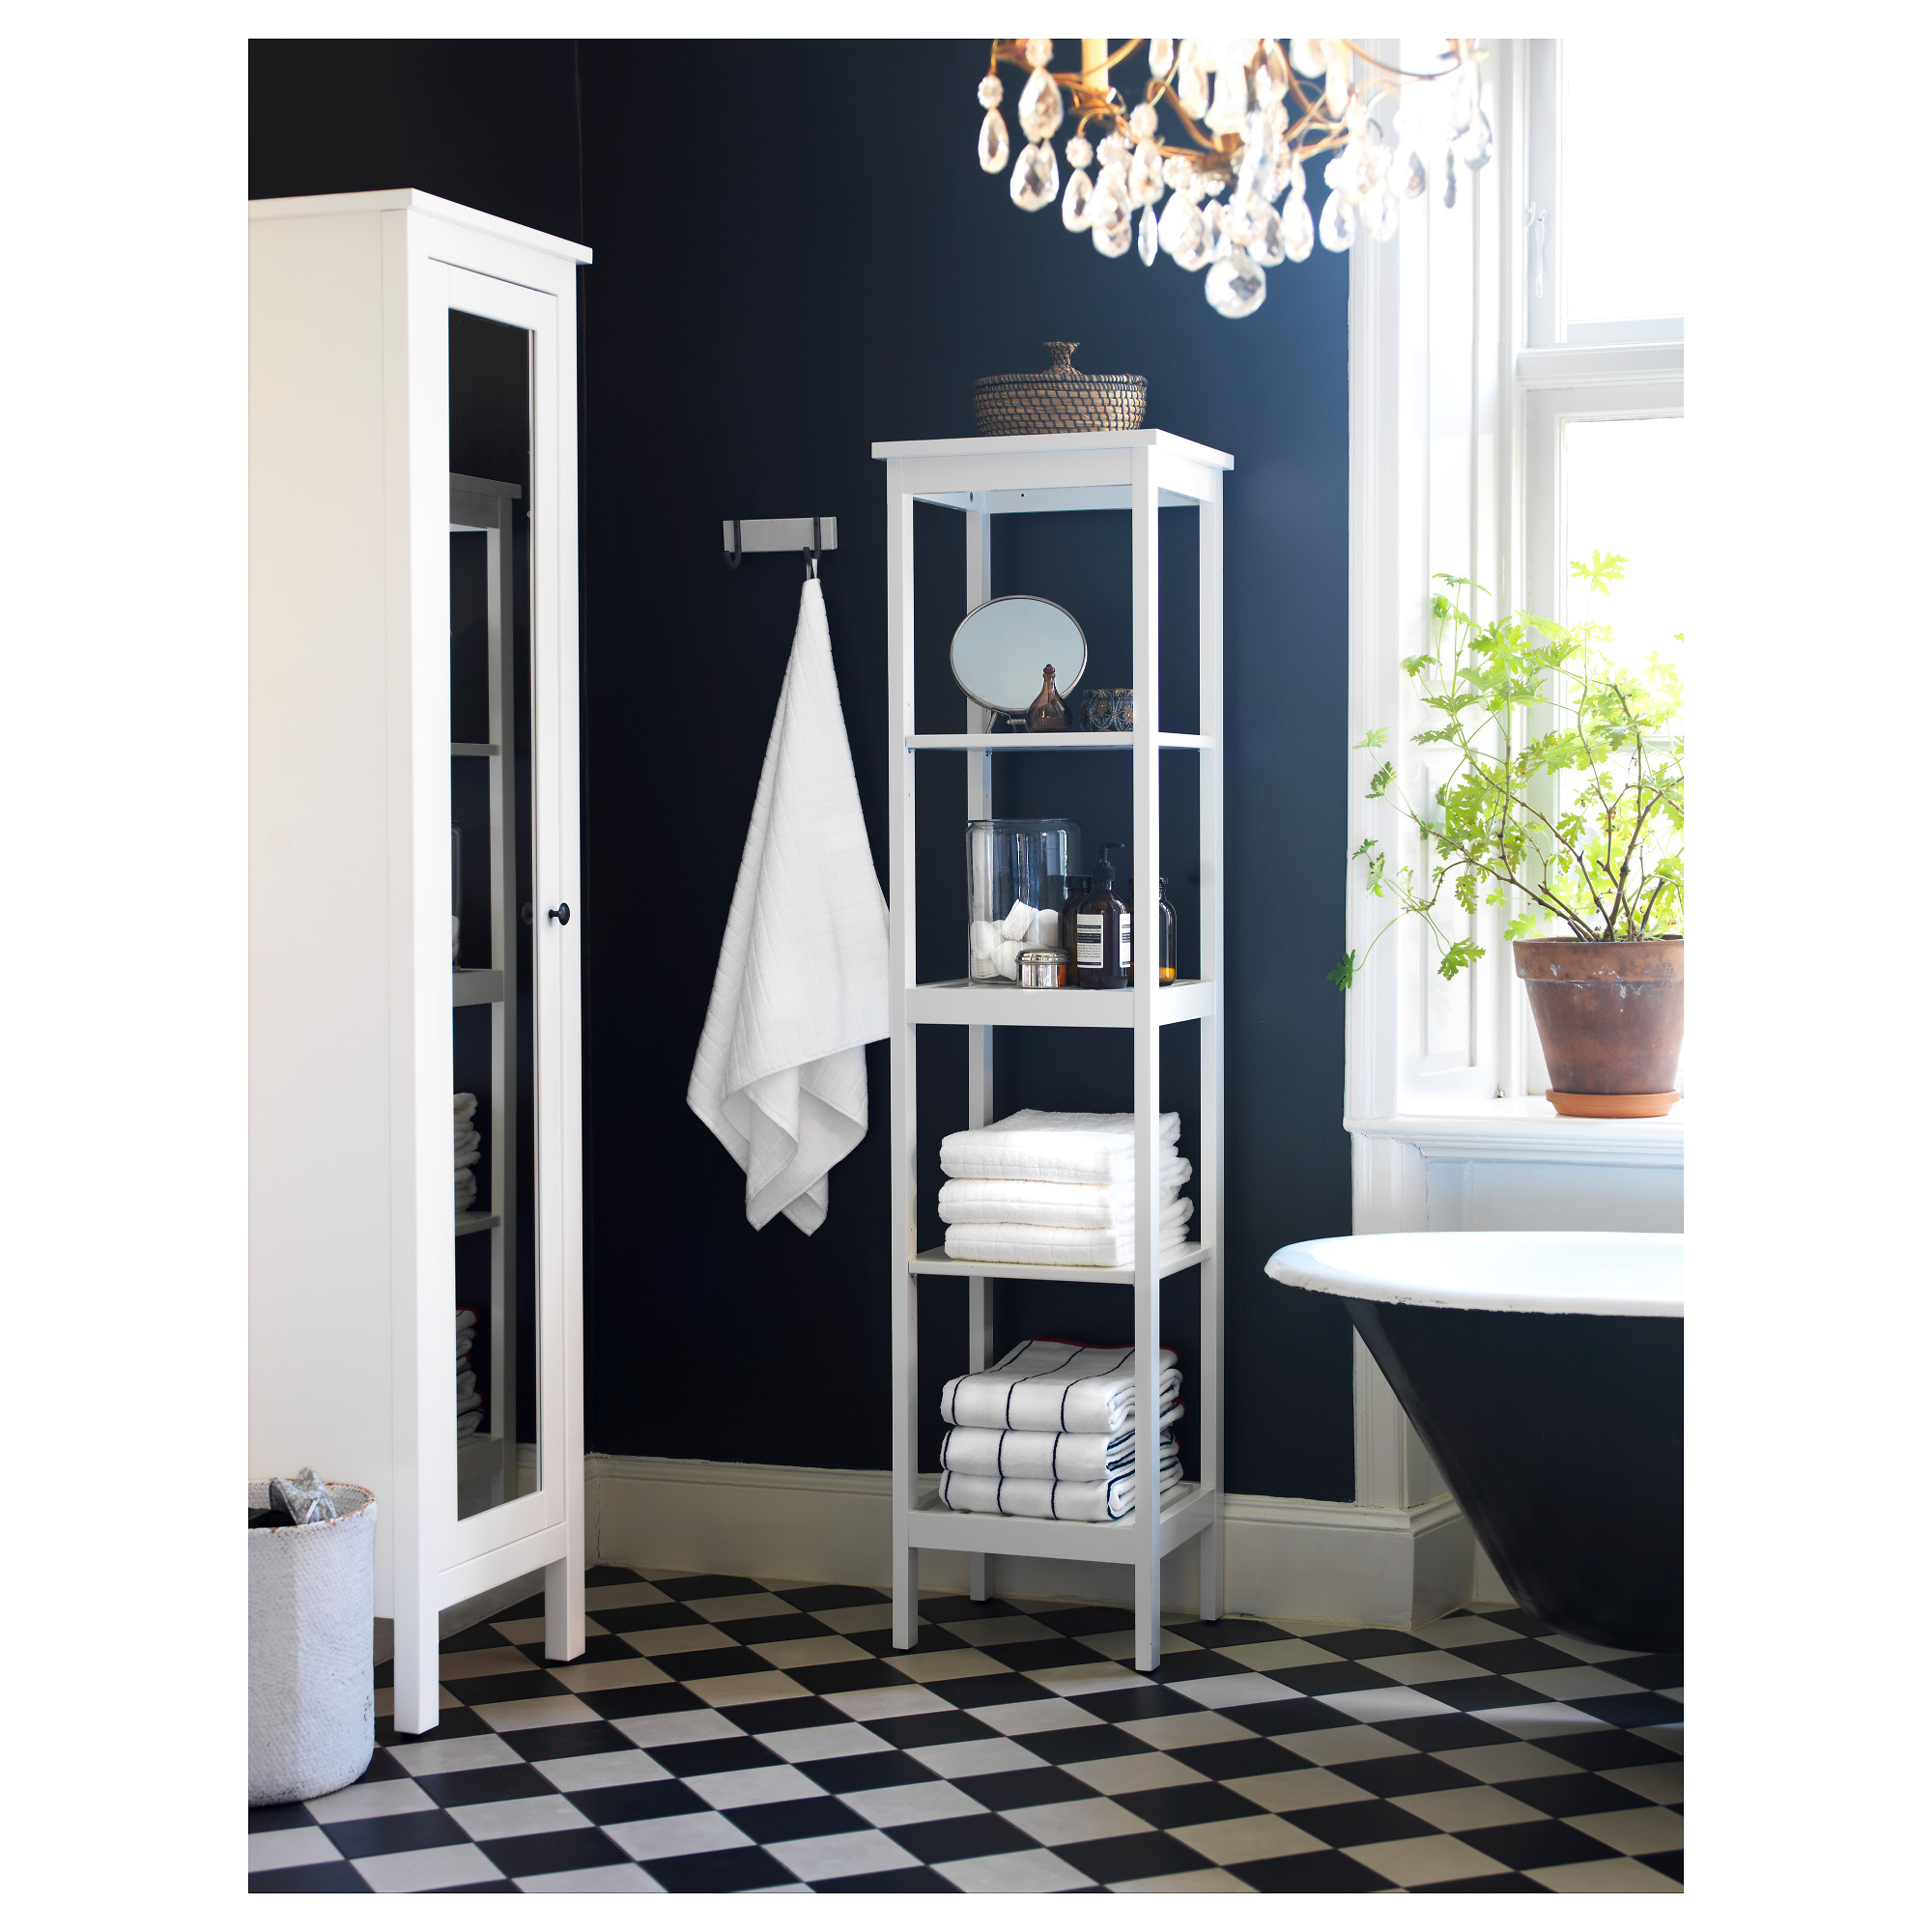 White Bathroom Shelving Unit Home Decorating Ideas House Designer